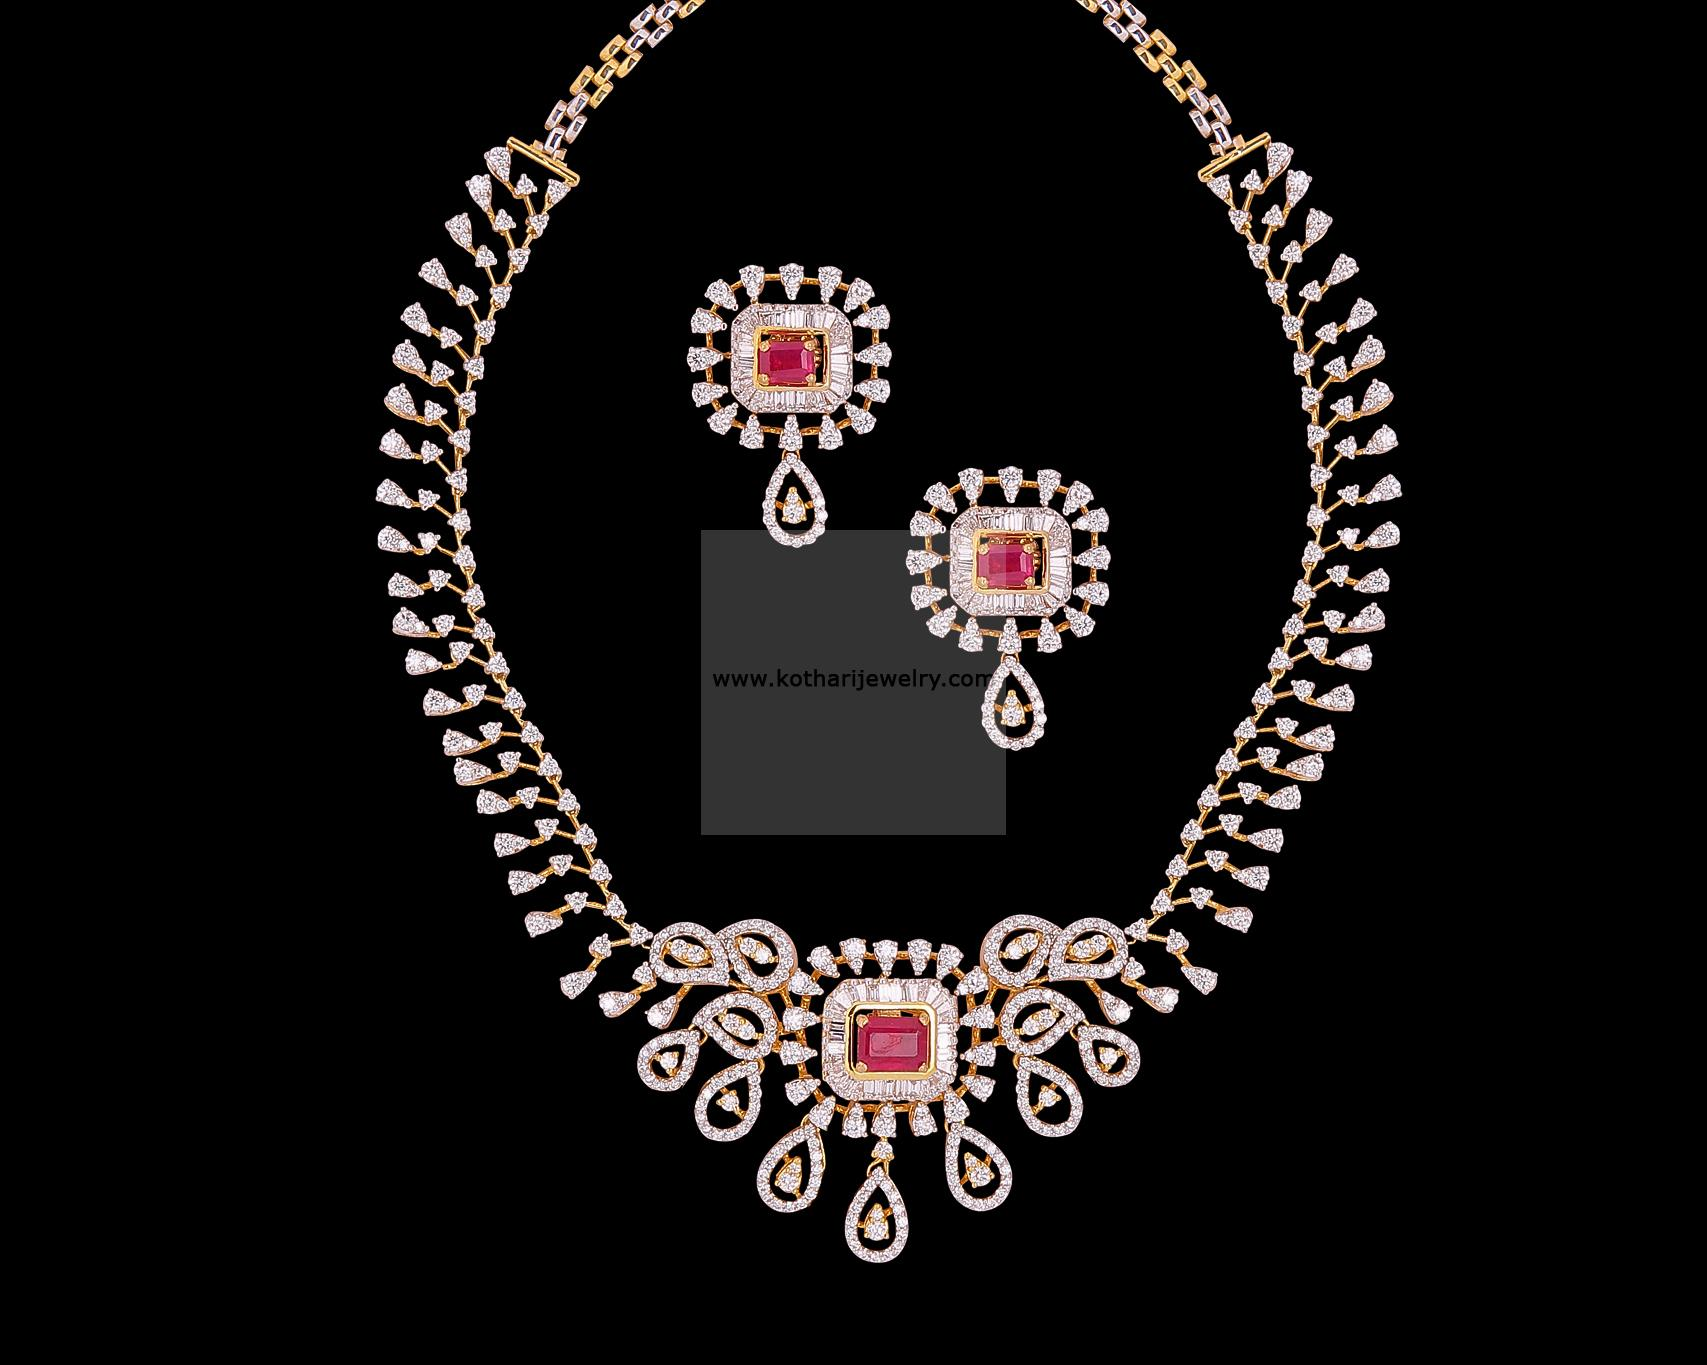 Diamond Necklace Broad Diamond Necklace Set Bridal Diamond Neck